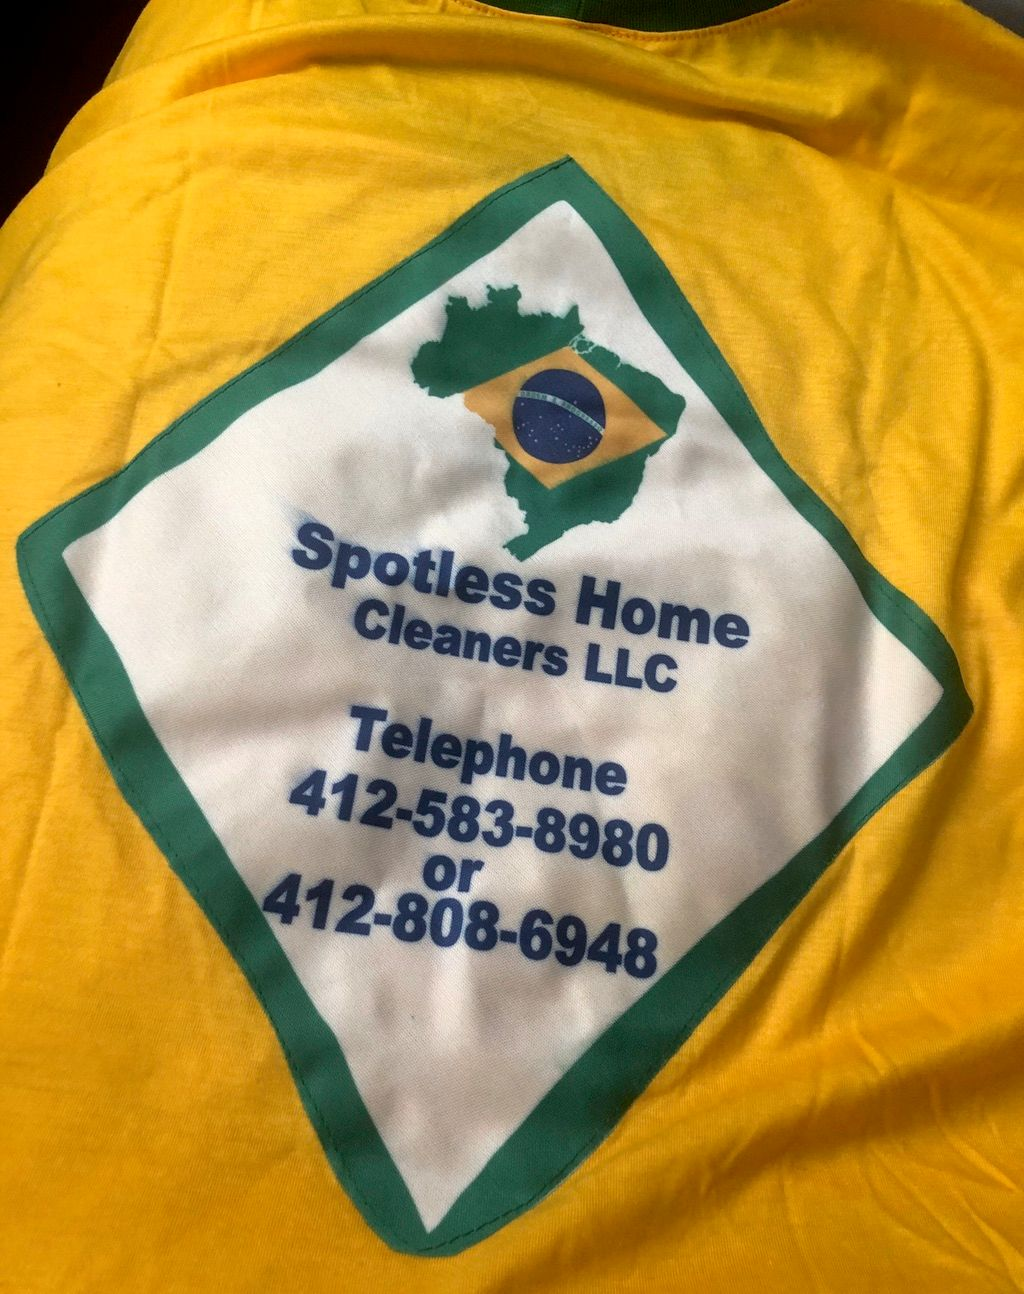 Spotless home cleaners llc